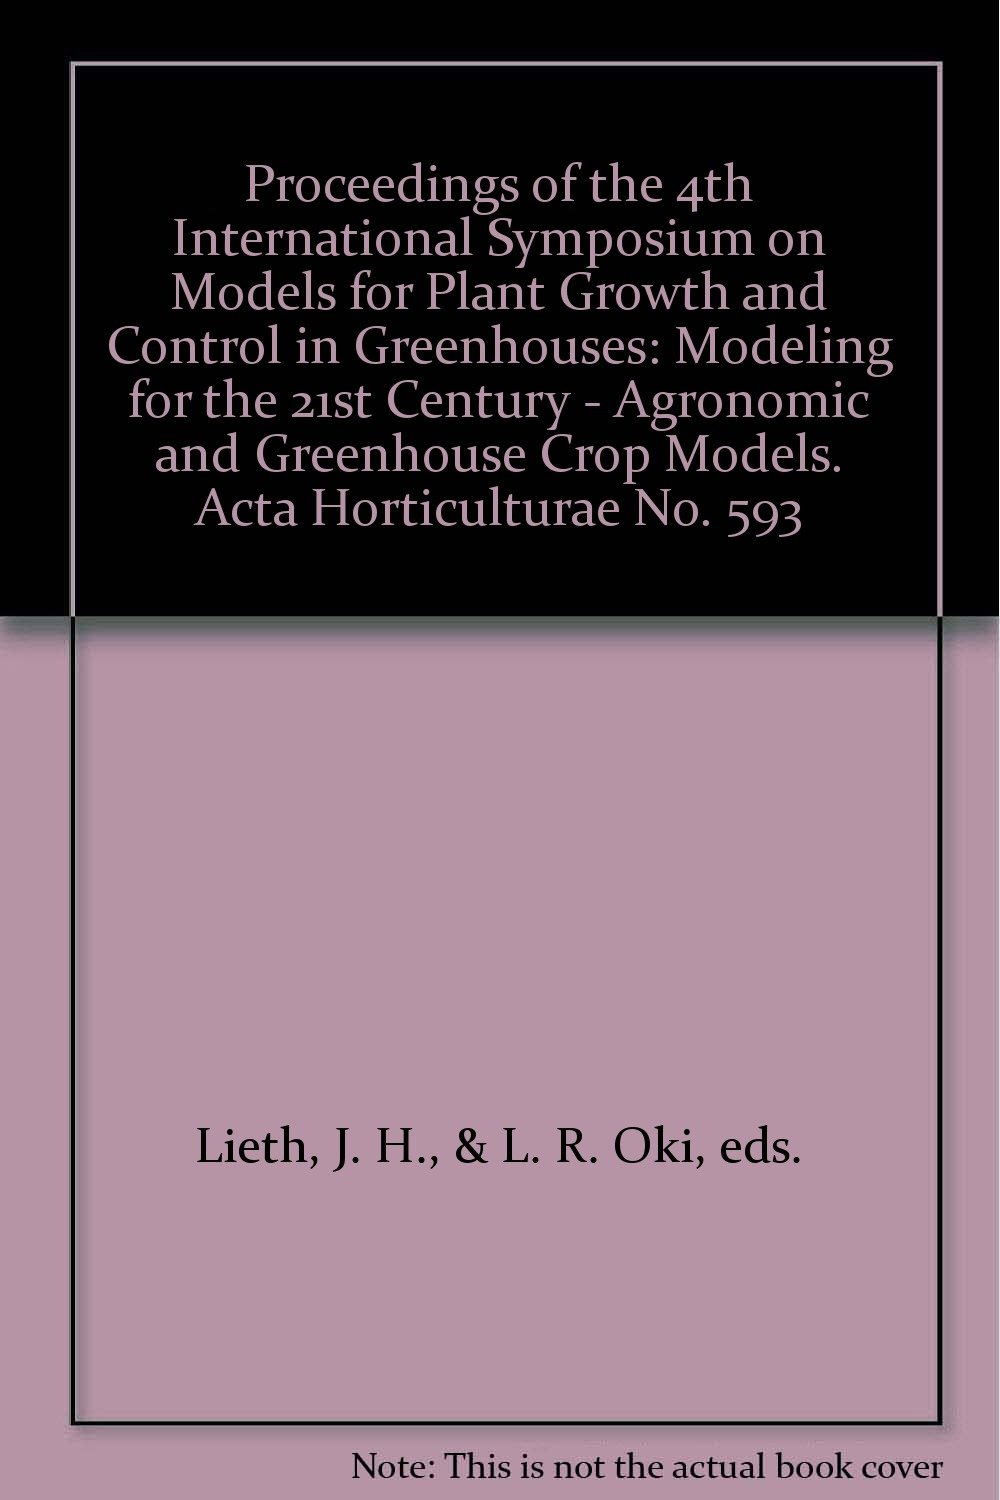 Proceedings of the 4th International Symposium on Models for Plant Growth and Control in Greenhouses: Modeling for the 21st Century - Agronomic and Greenhouse Crop Models. Acta Horticulturae No. 593